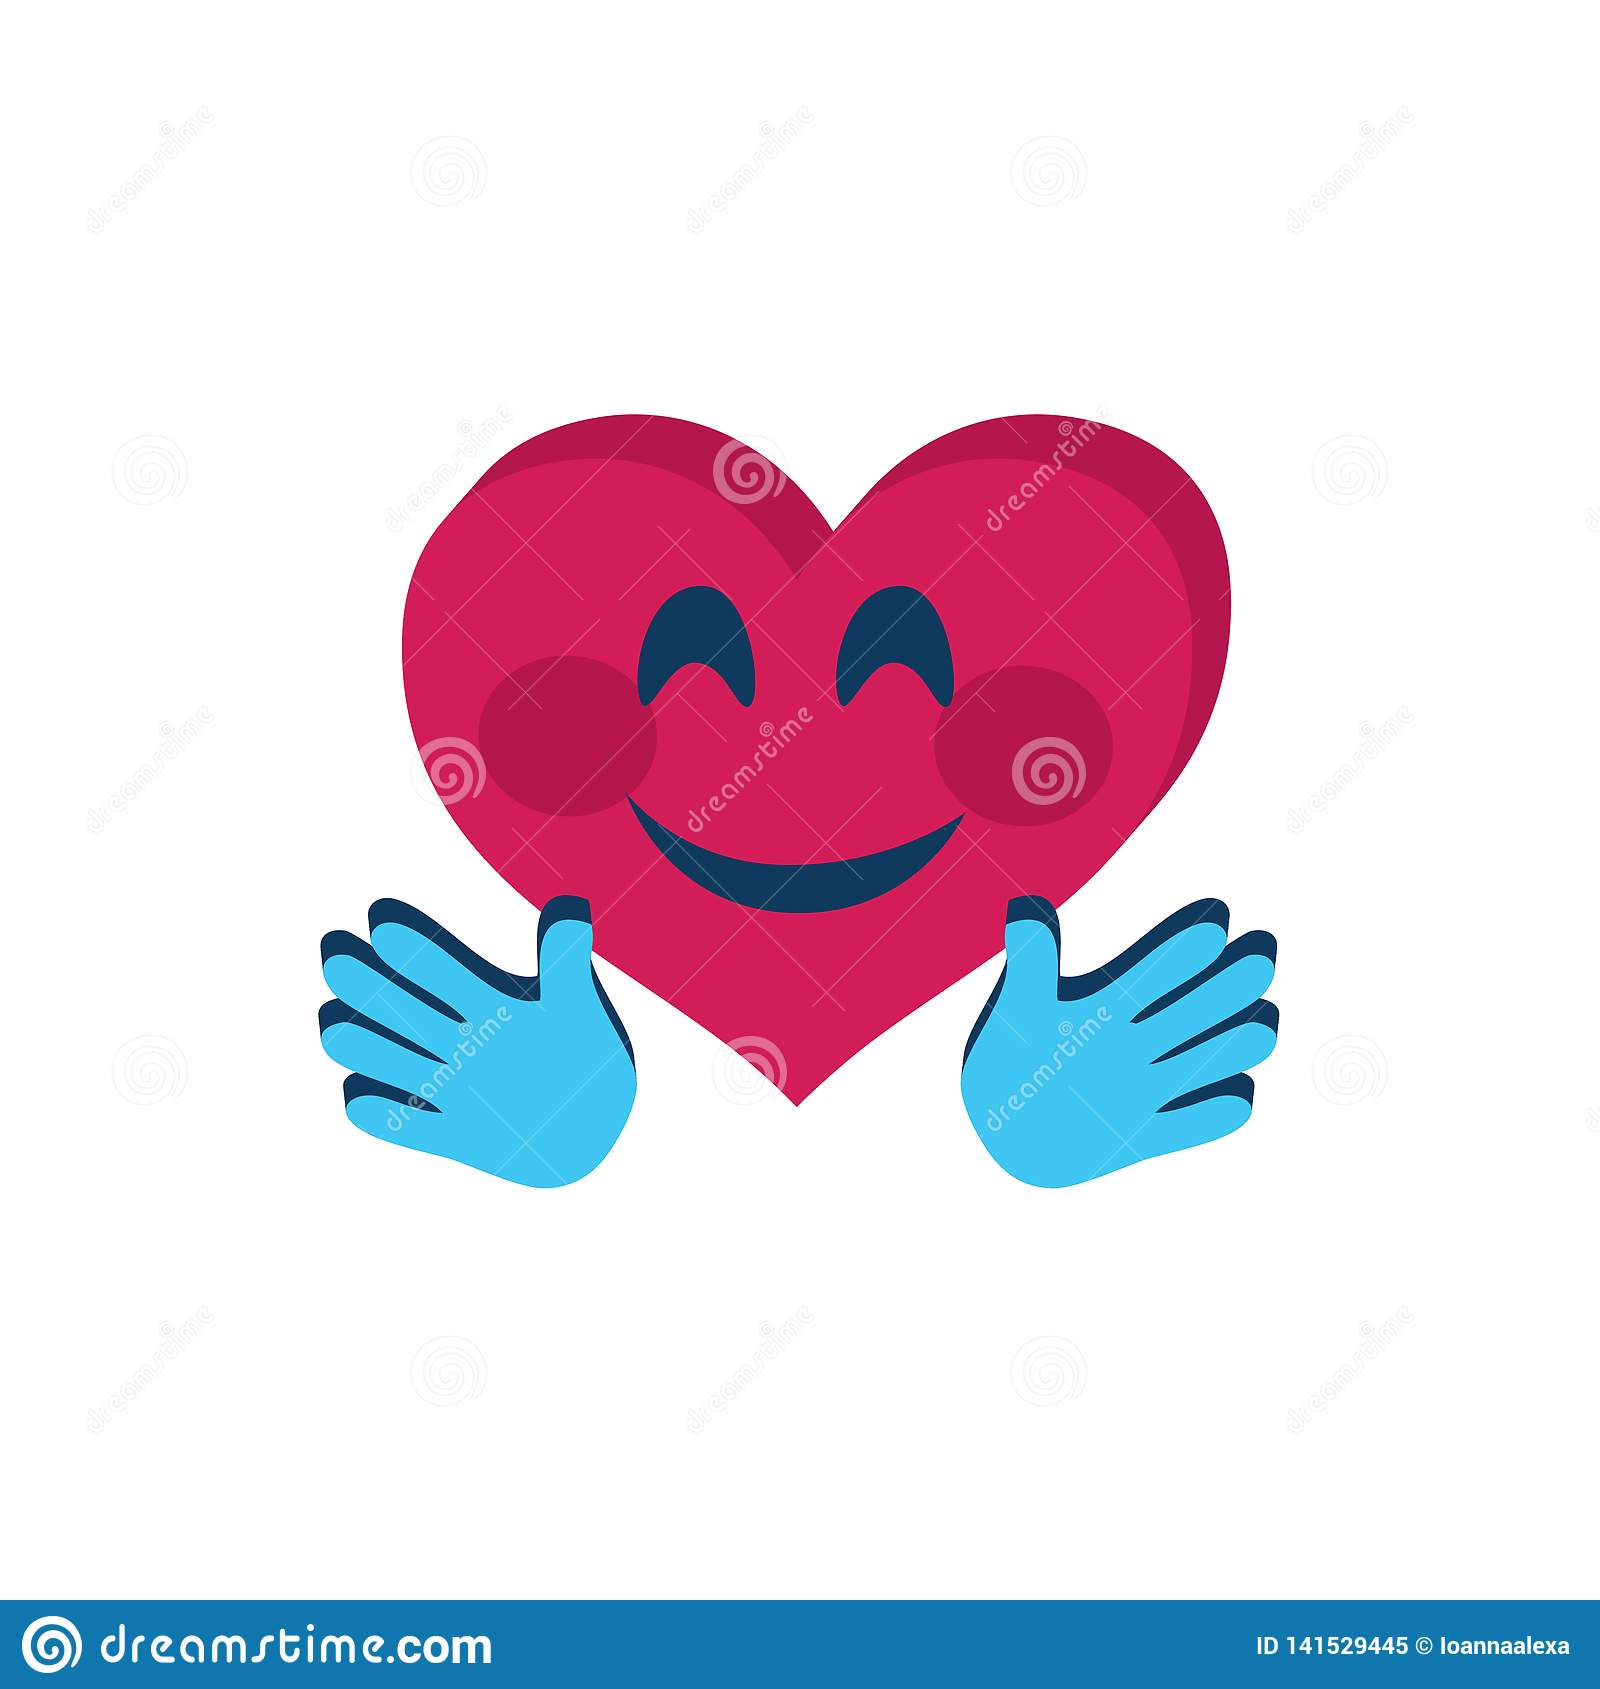 Cute Emoji Heart Shaped With Hands Stock Vector.